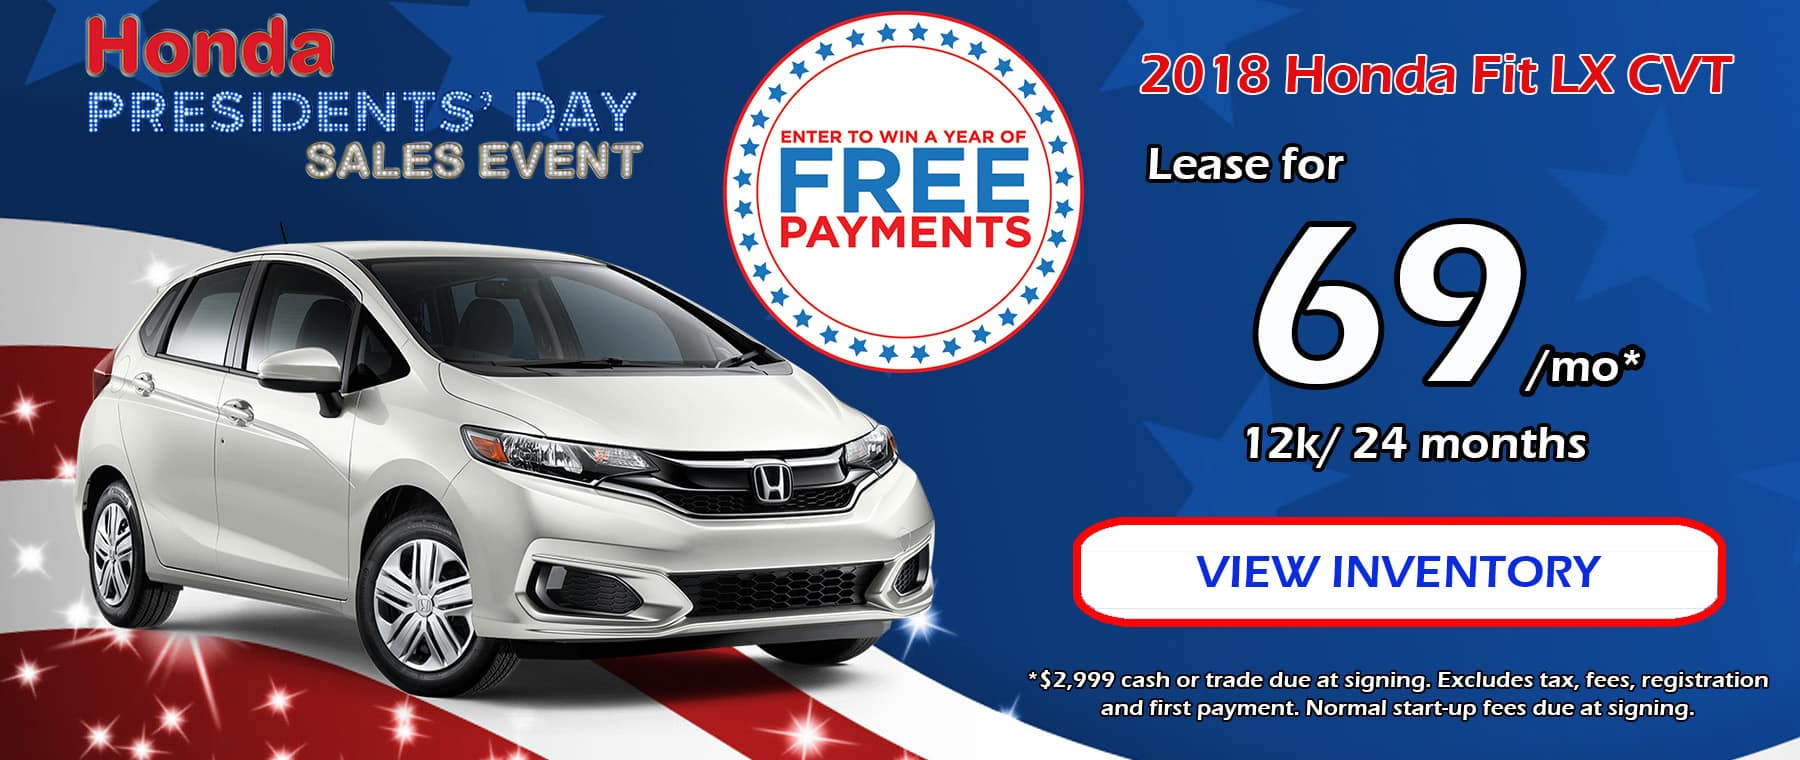 Dover honda new used honda dealership in dover nh for Honda lease payment